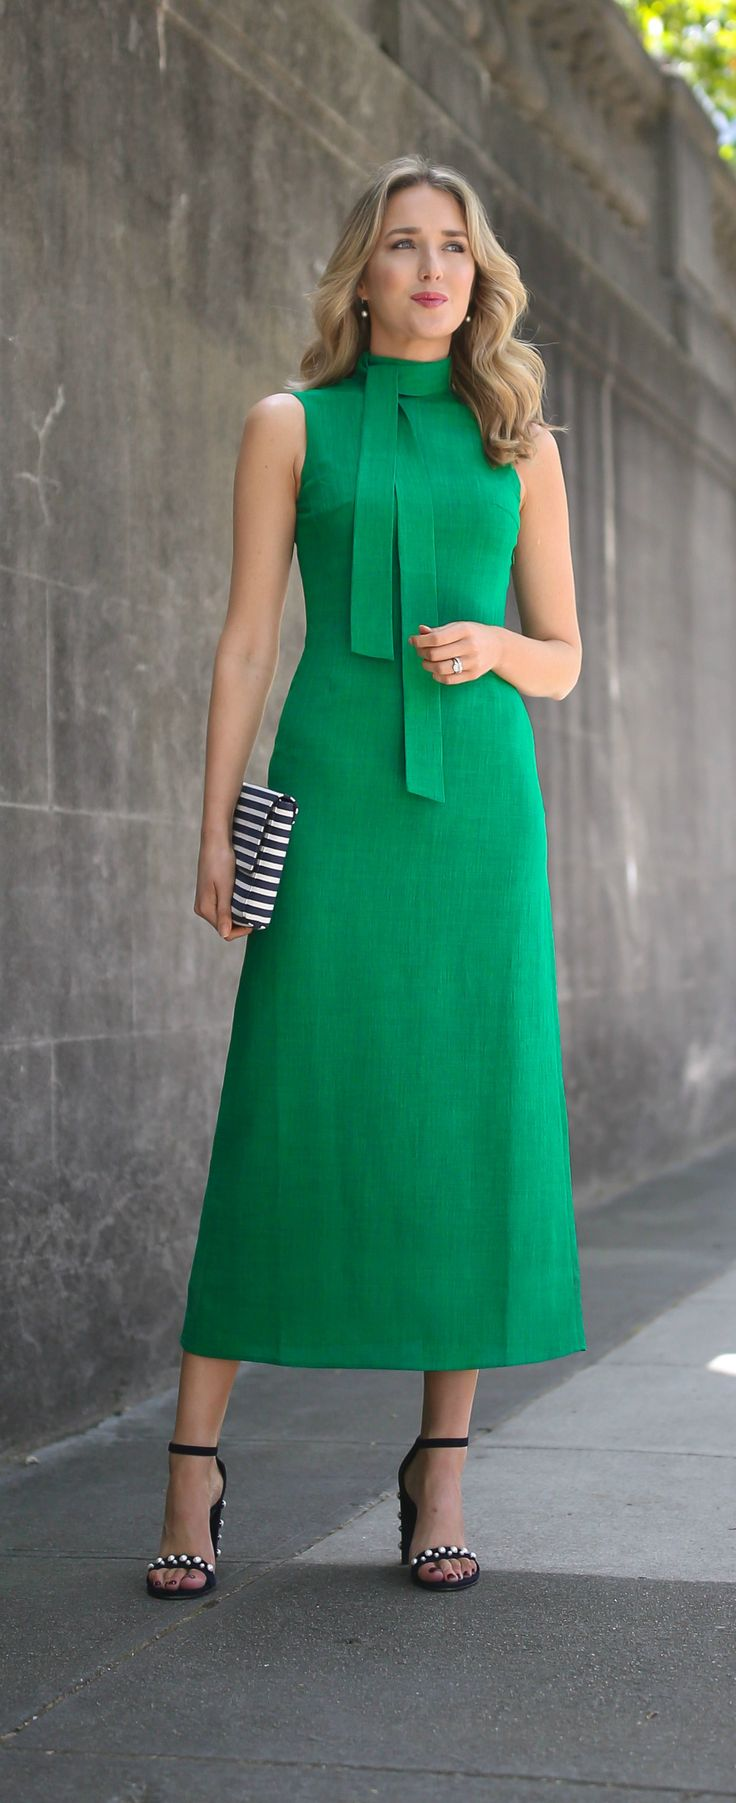 kelly green midi dress with tie neck detail, navy blue suede ankle strap sandals pearl embellished detail and block heel, navy and white striped clutch hand bag // what to wear to high tea // classic style fashion cefinn stuart weitzman morepearls